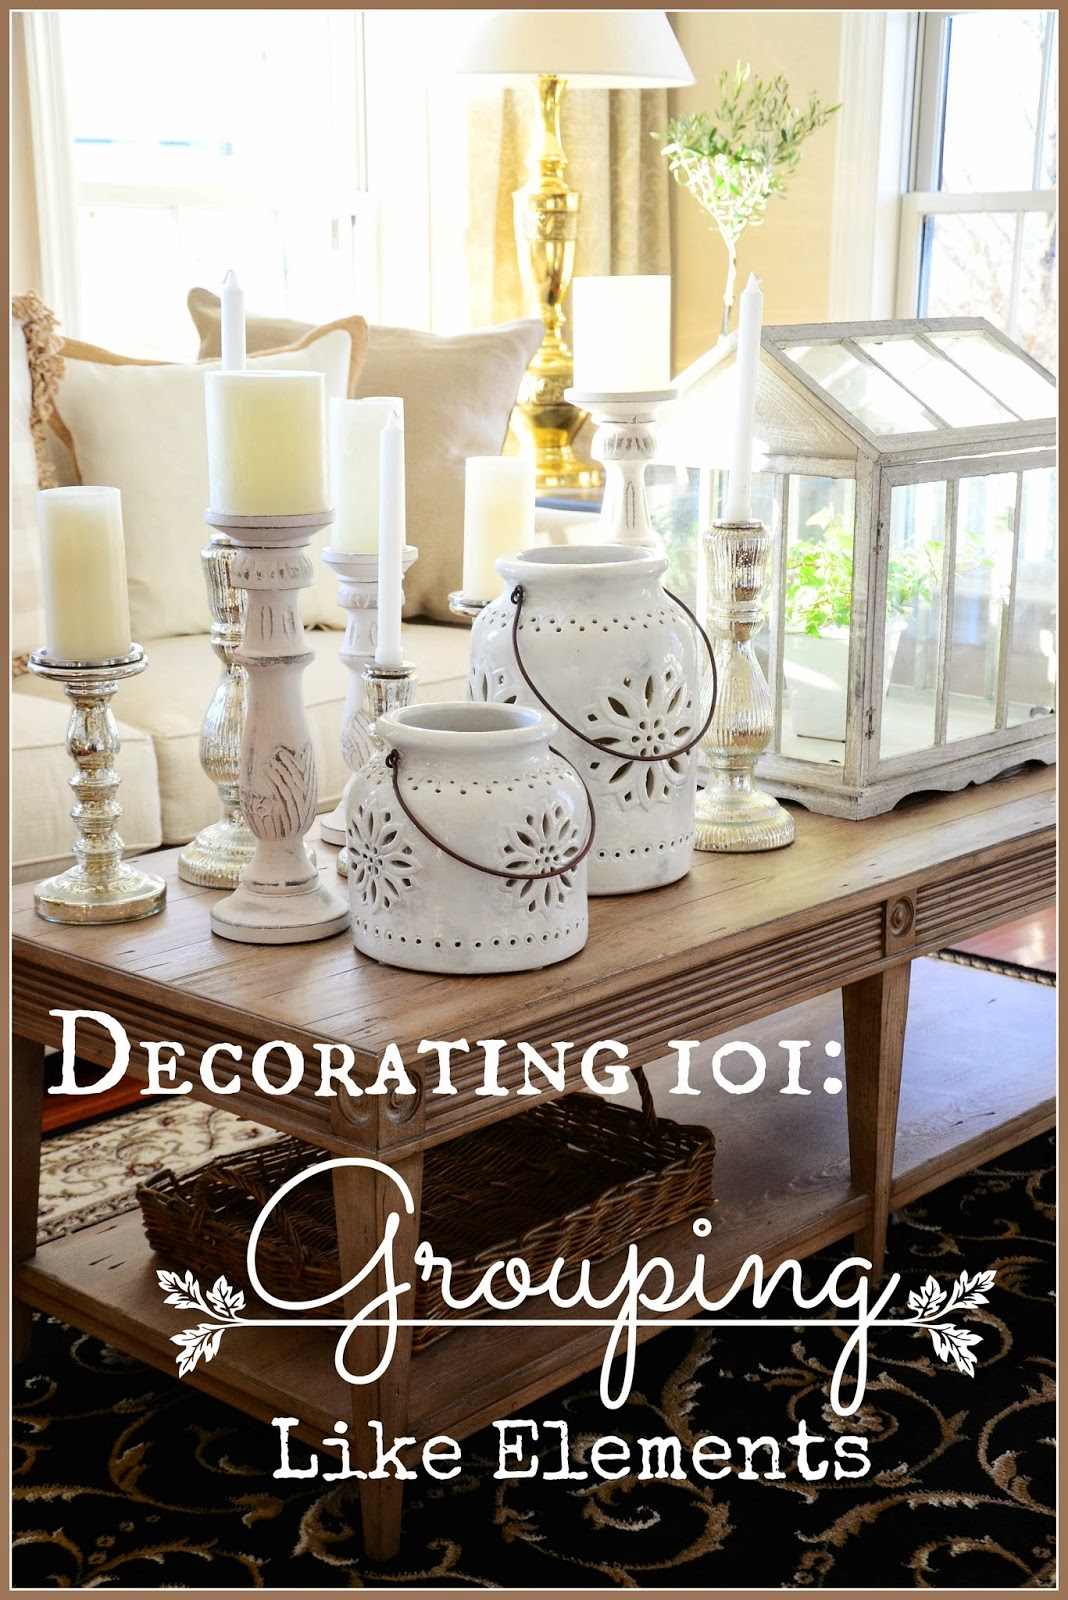 Decorating 101 decorating 101: grouping like elements - stonegable